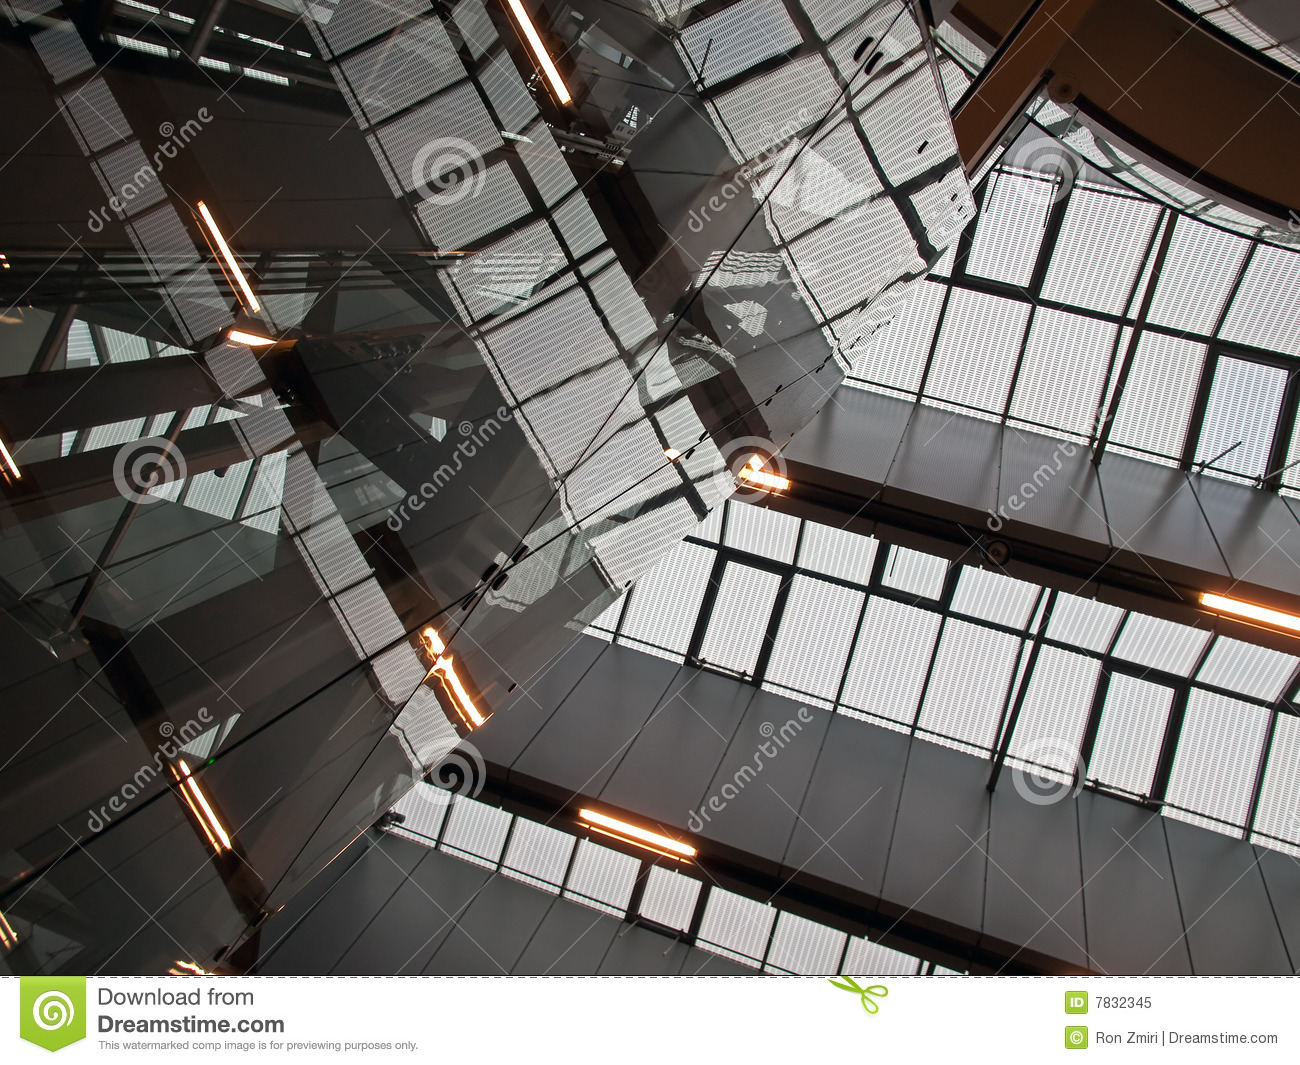 Geometric Abstract Architecture Royalty Free Stock Photo